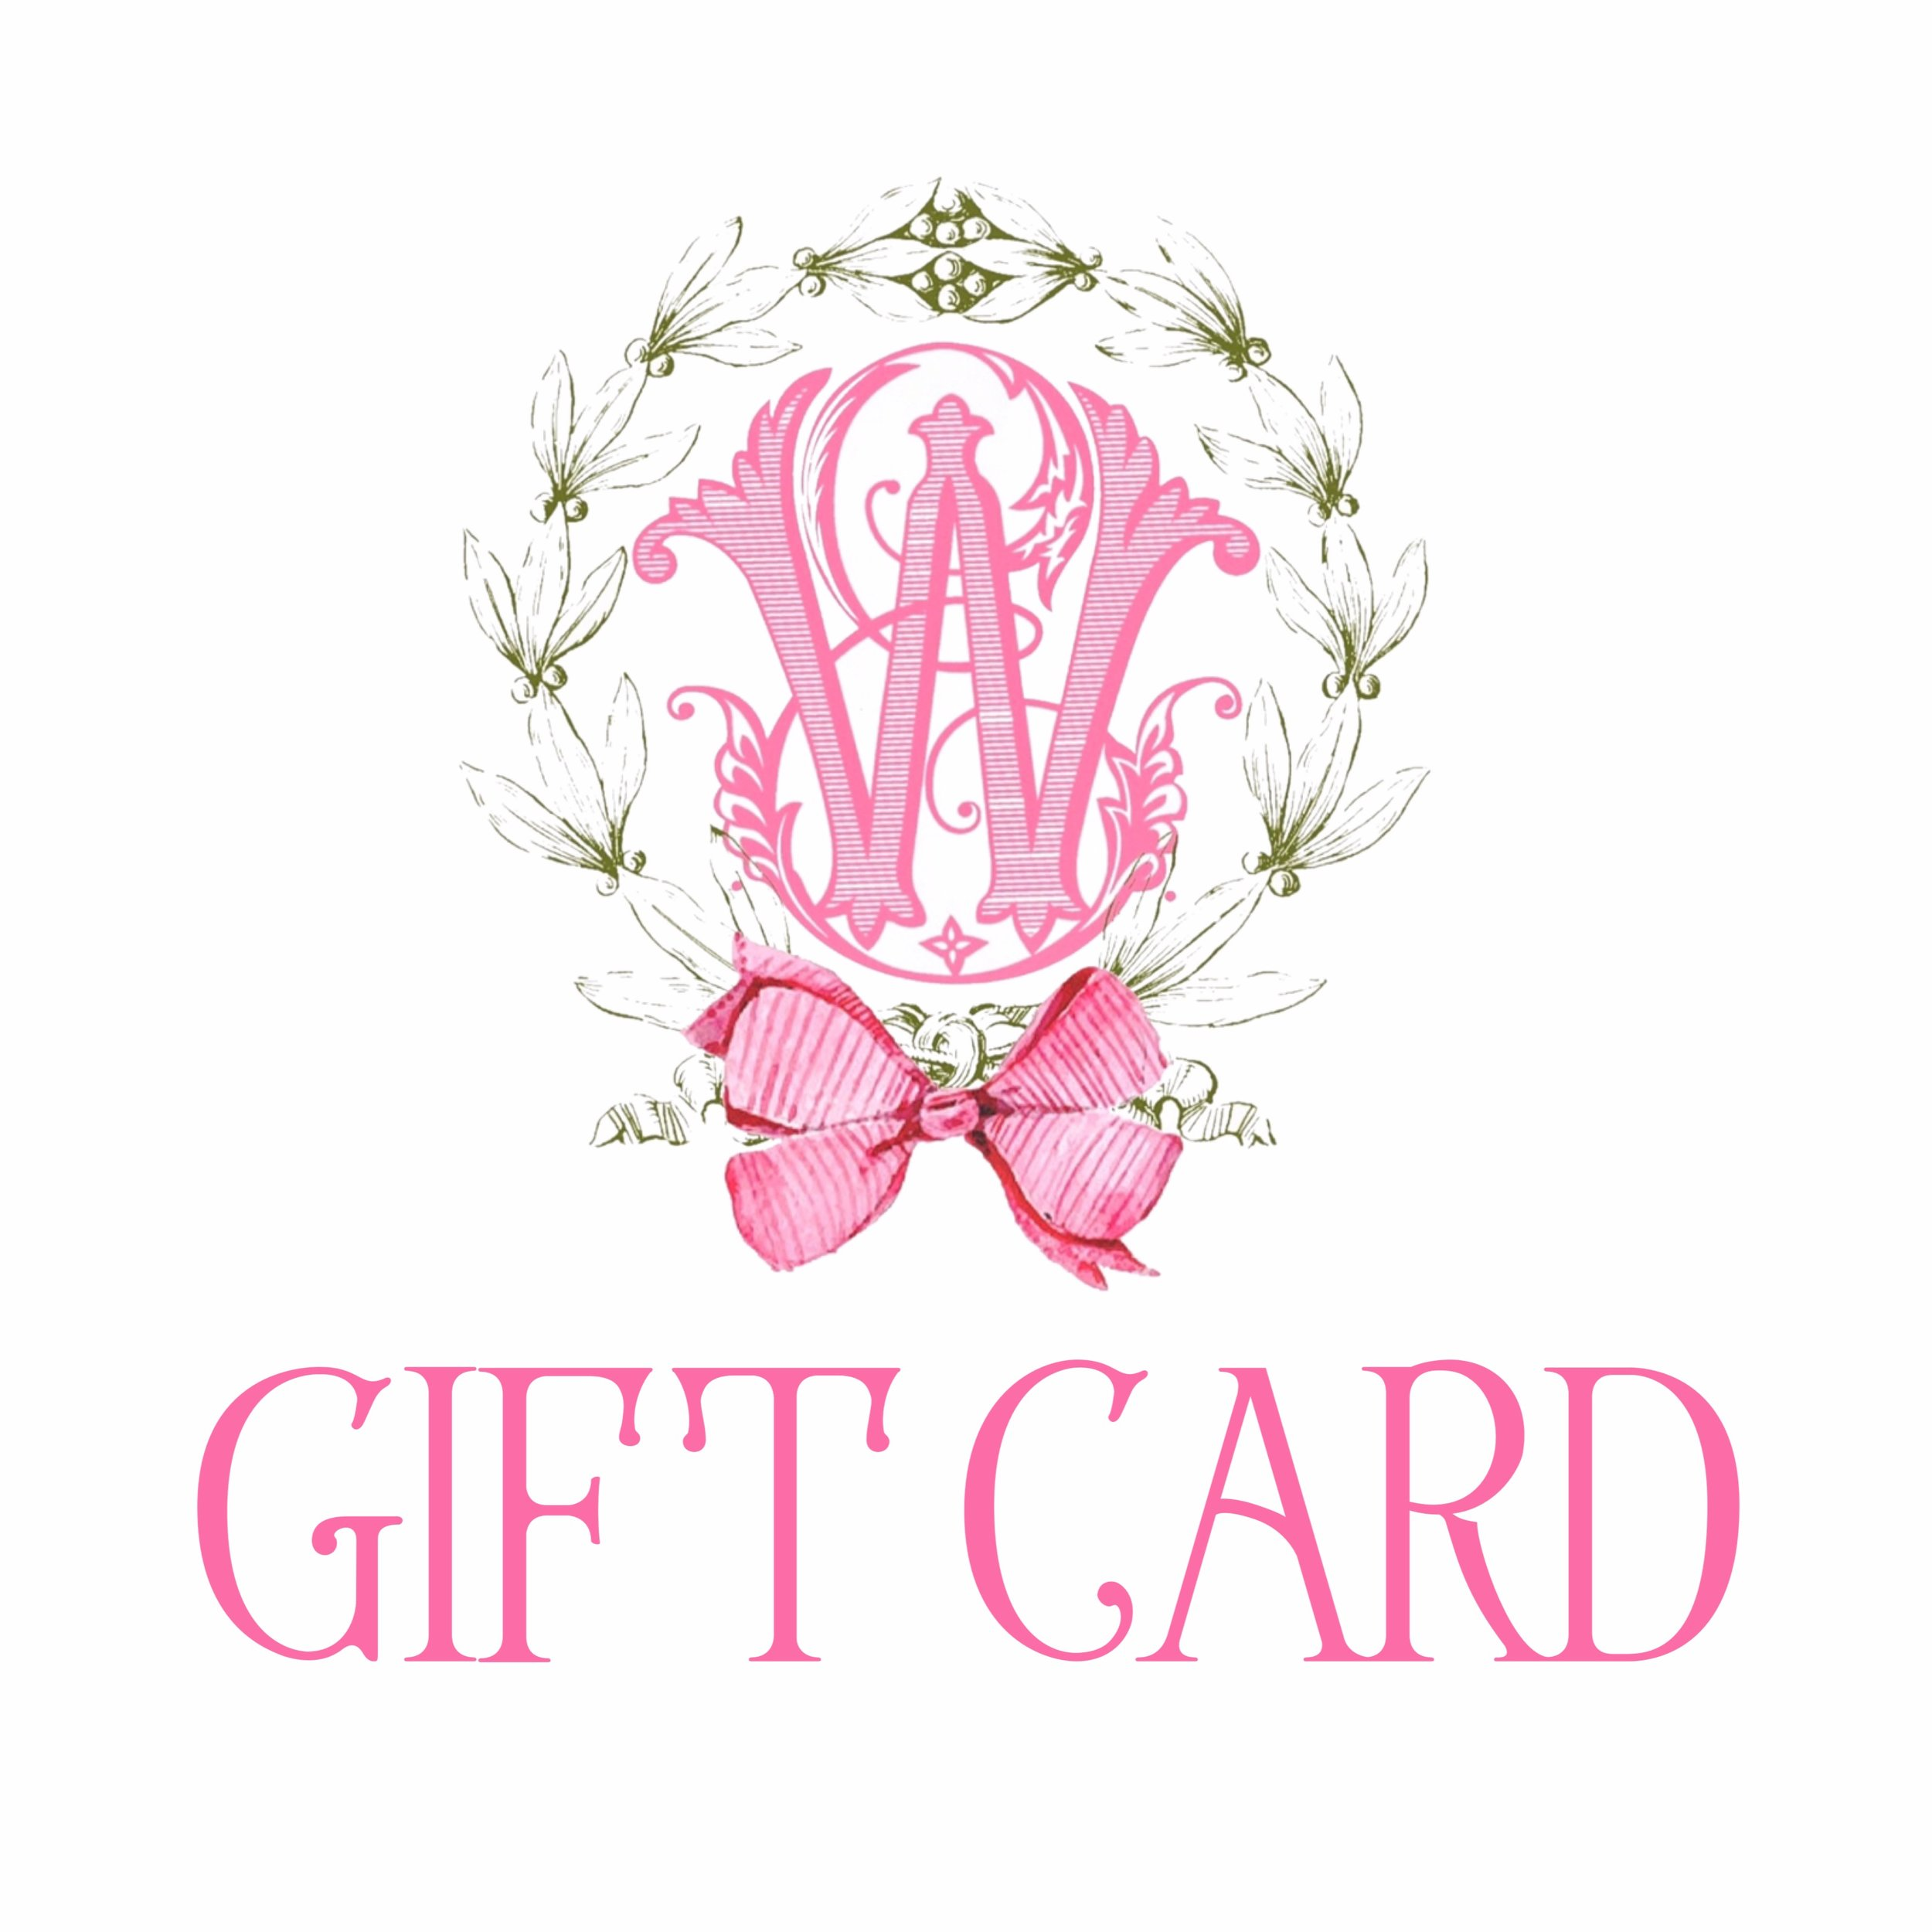 EWD GIFT CARDS NOW AVAILABLE! - We are so excited to announce that we now offer gift cards!